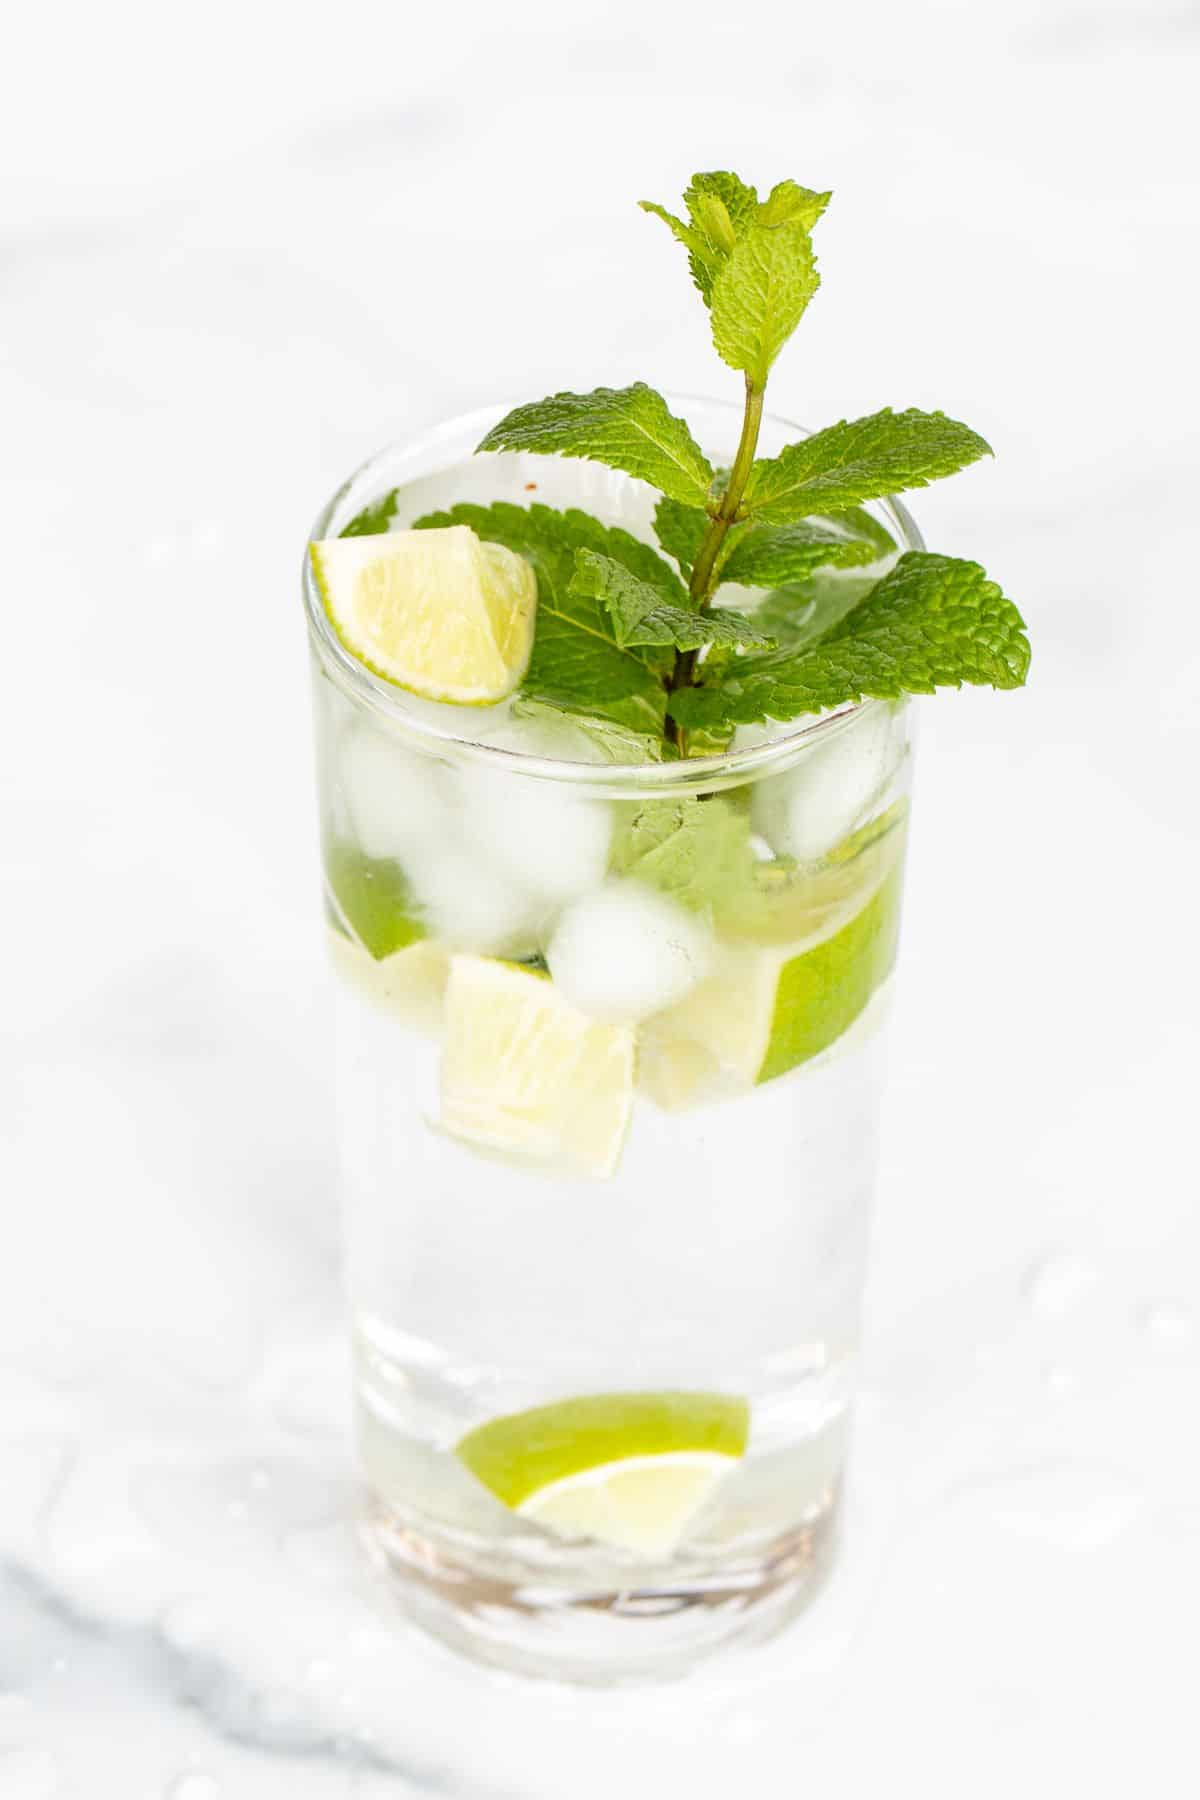 A clear glass full of a virgin mojito recipe, garnished with lime and mint.